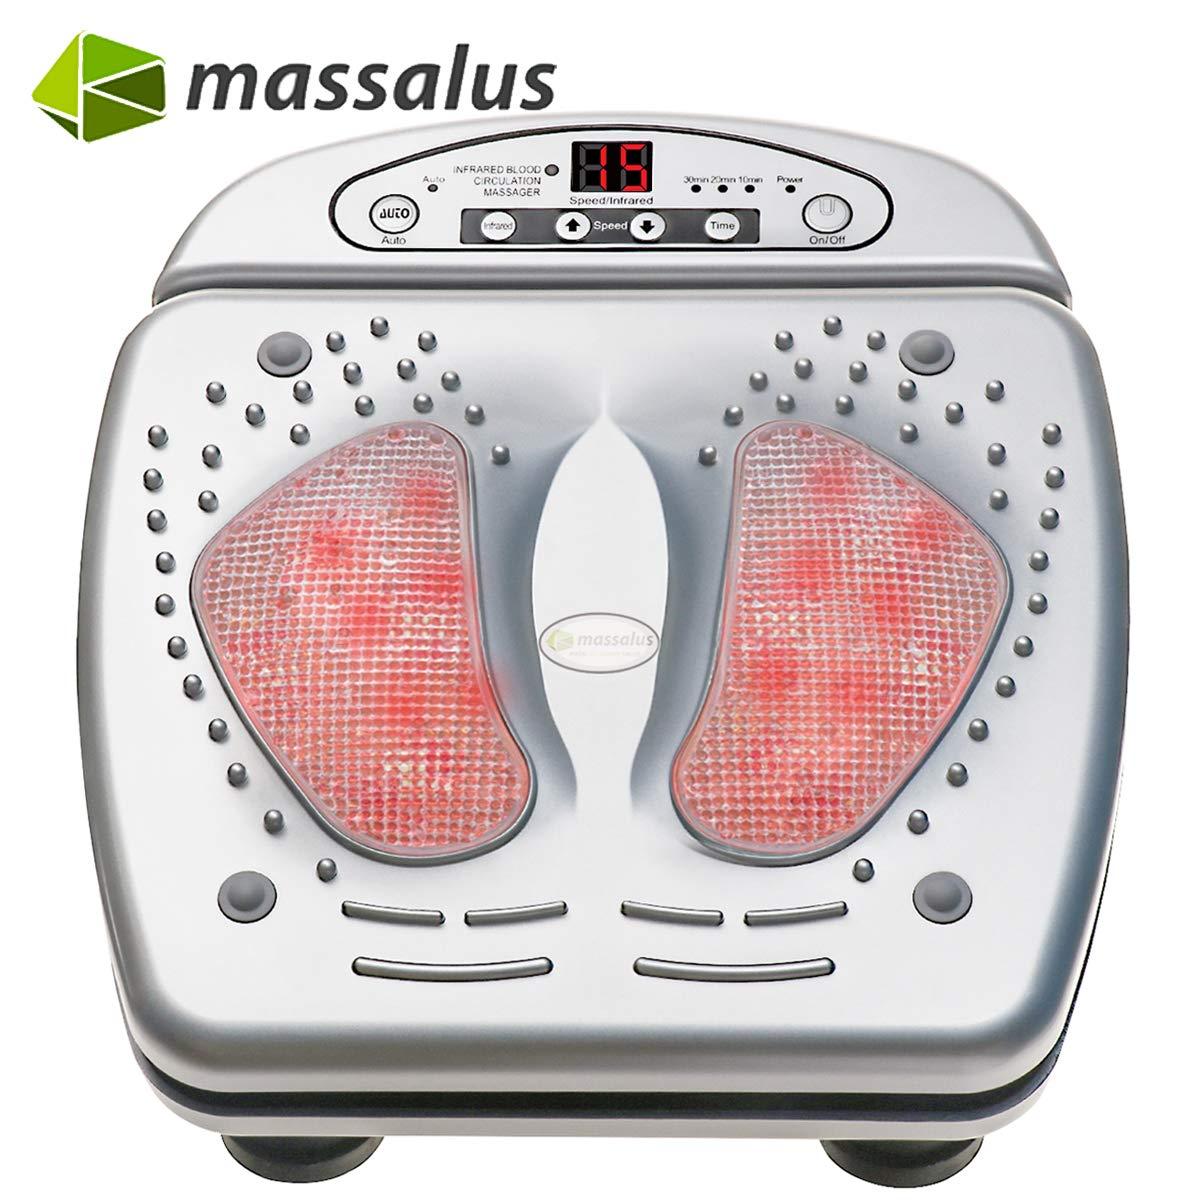 Massalus Foot Massager Multi-Level Setting Vibro Plantar Massager and Built in Infrared Heat Function for Tired Feet, Chronic, Neuropathy and Nerve Pain Silvery